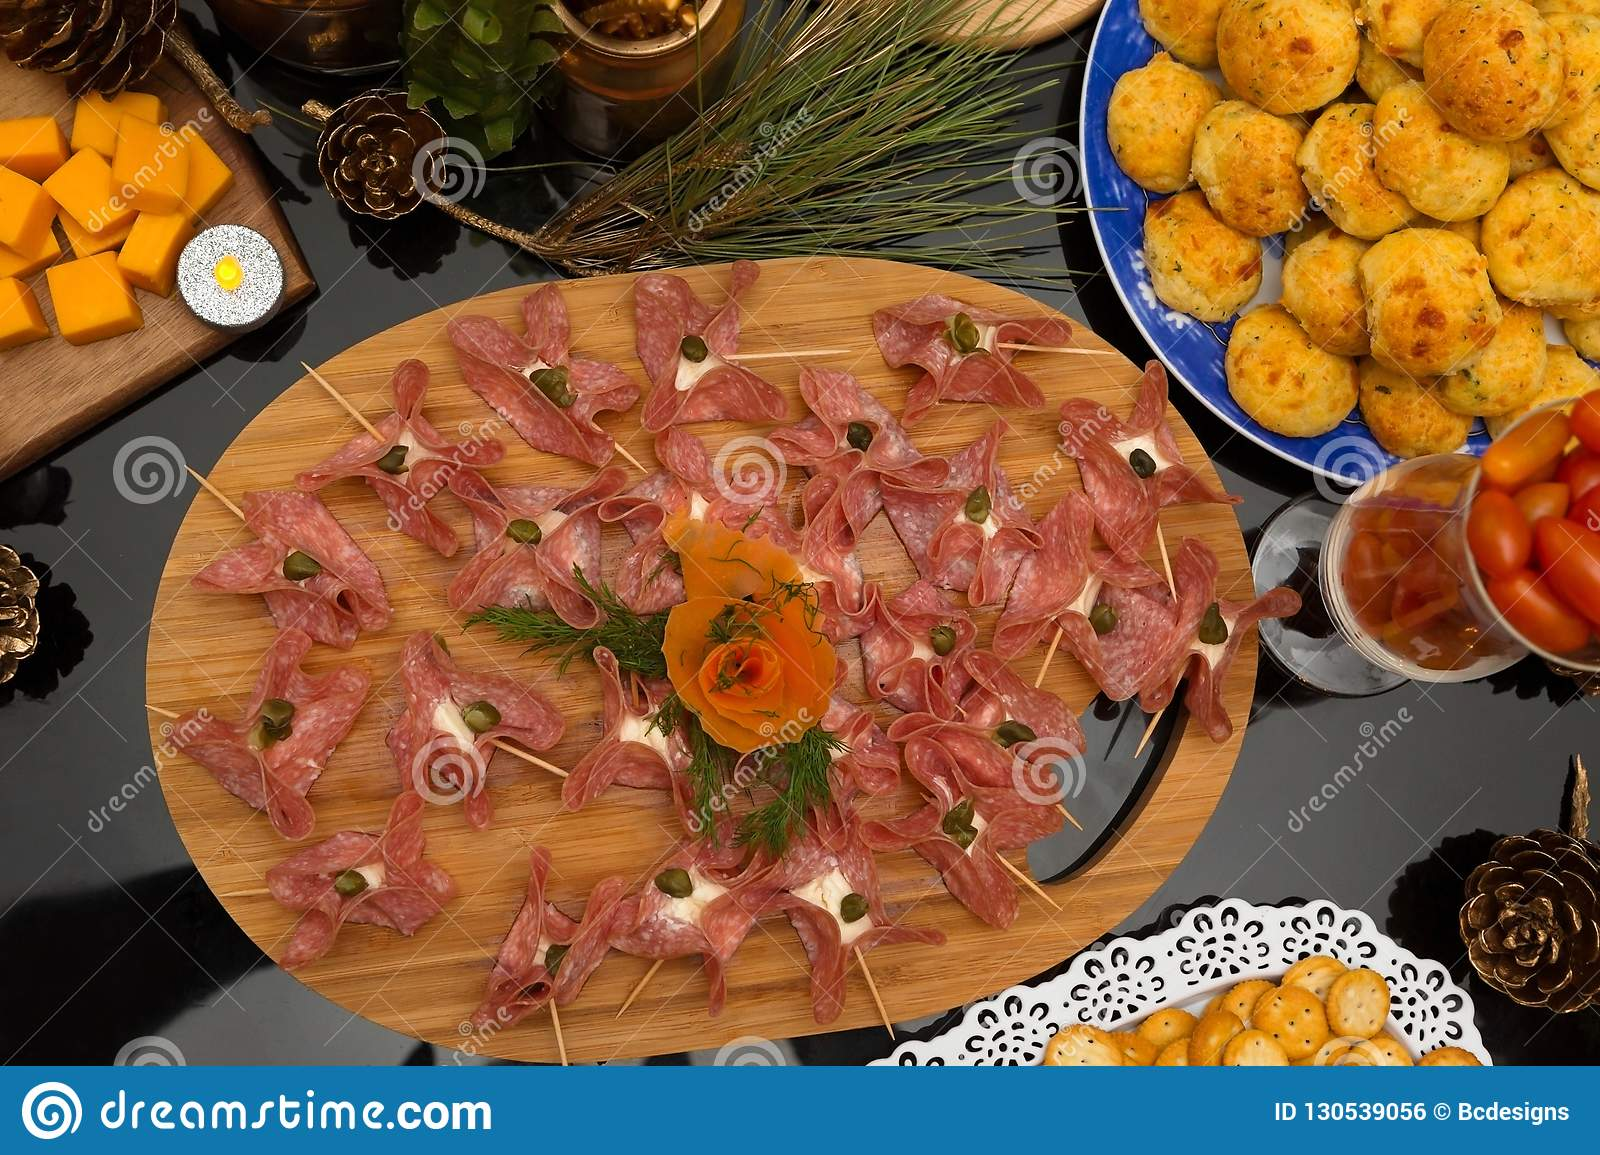 French Style Party Platter With Decorations Stock Photo Image Of Tasty Brunch 130539056